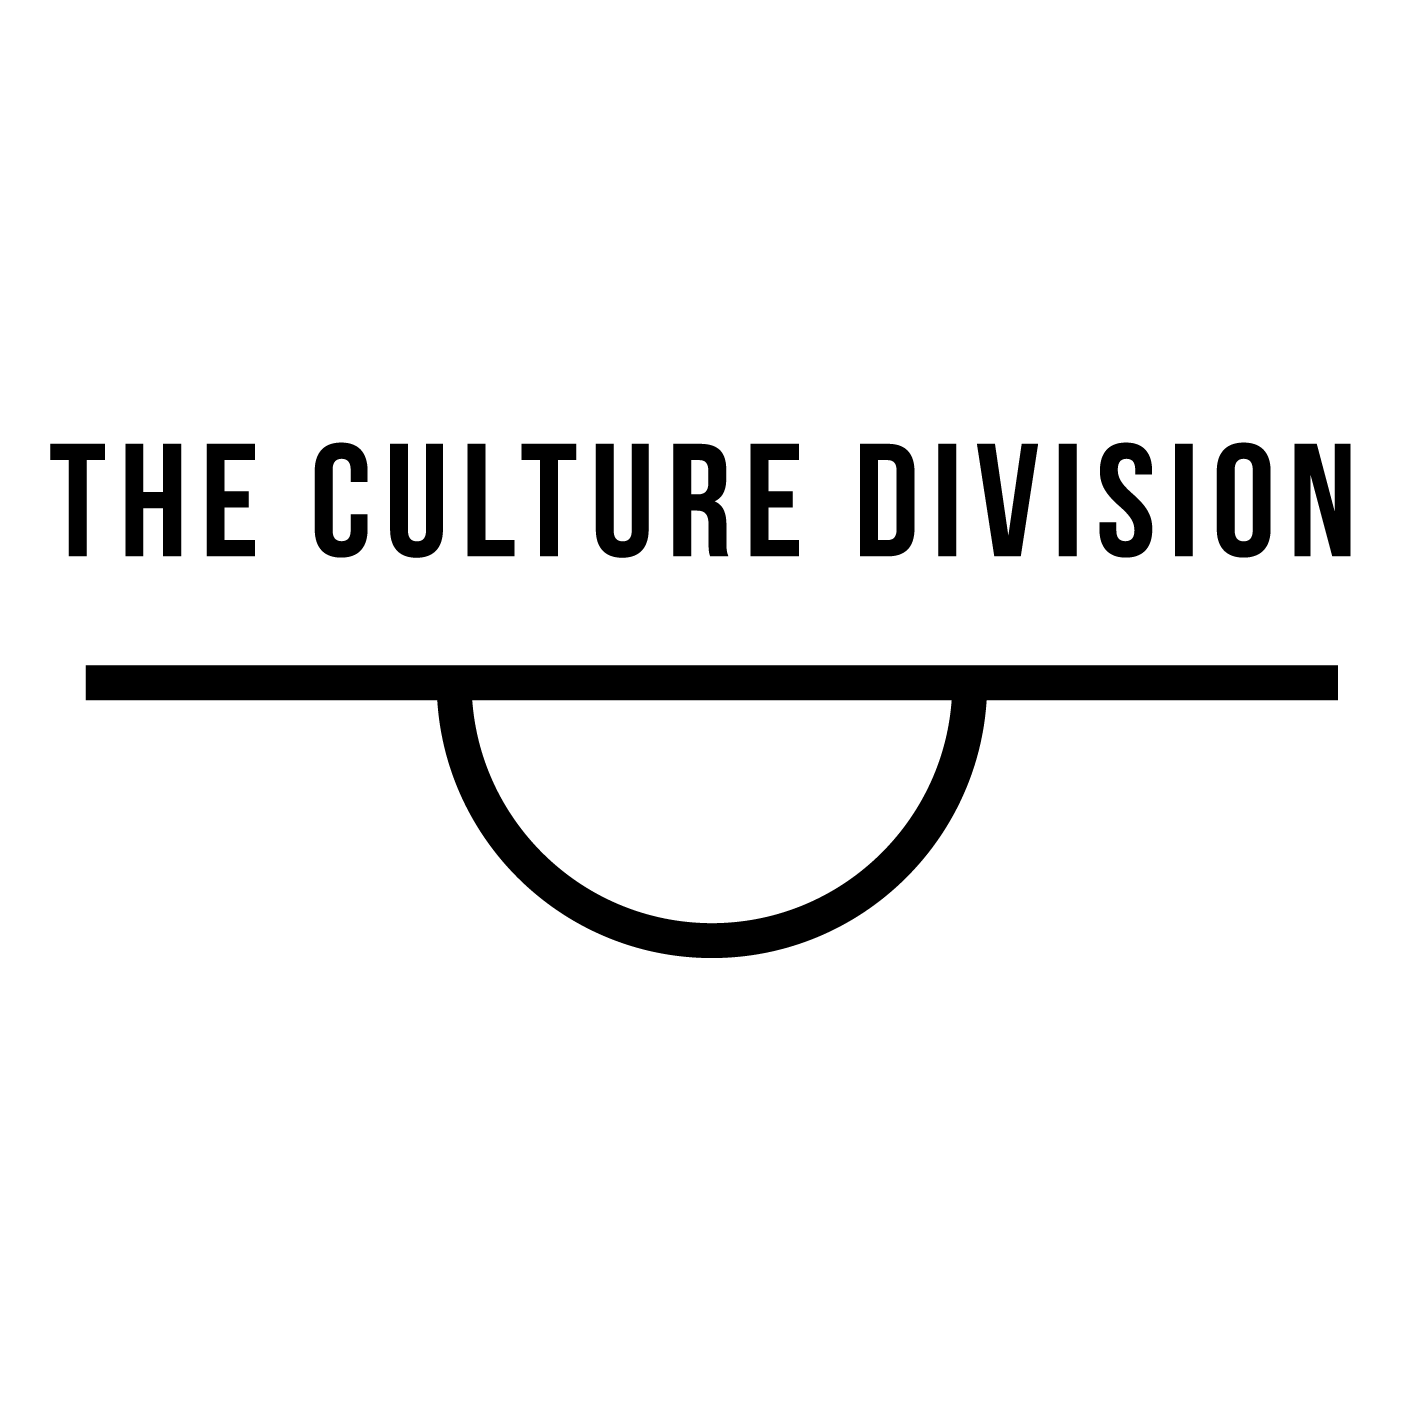 THE CULTURE DIVISION